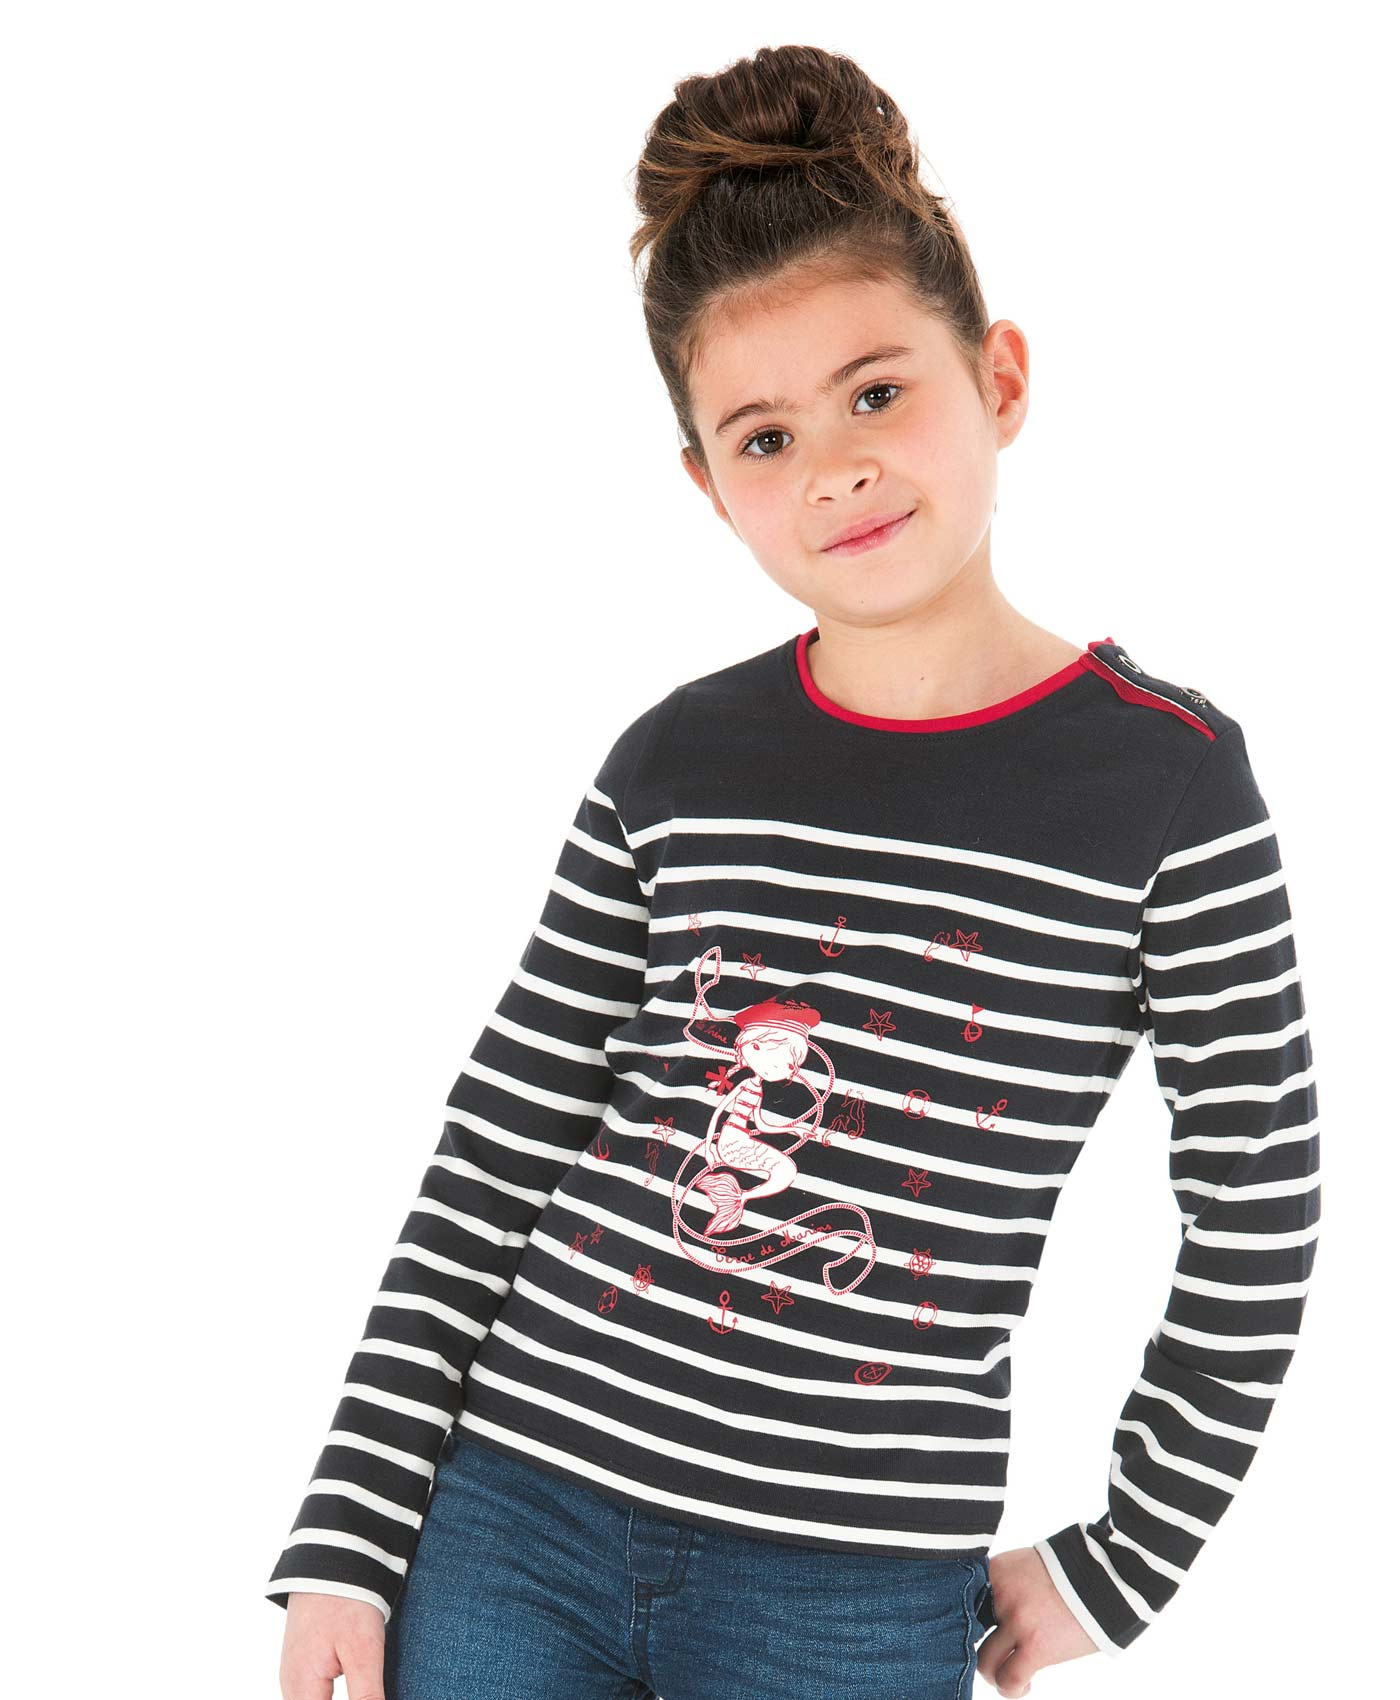 Tee-shirt manches longues fille rayé marine - Mode marine Enfant fille